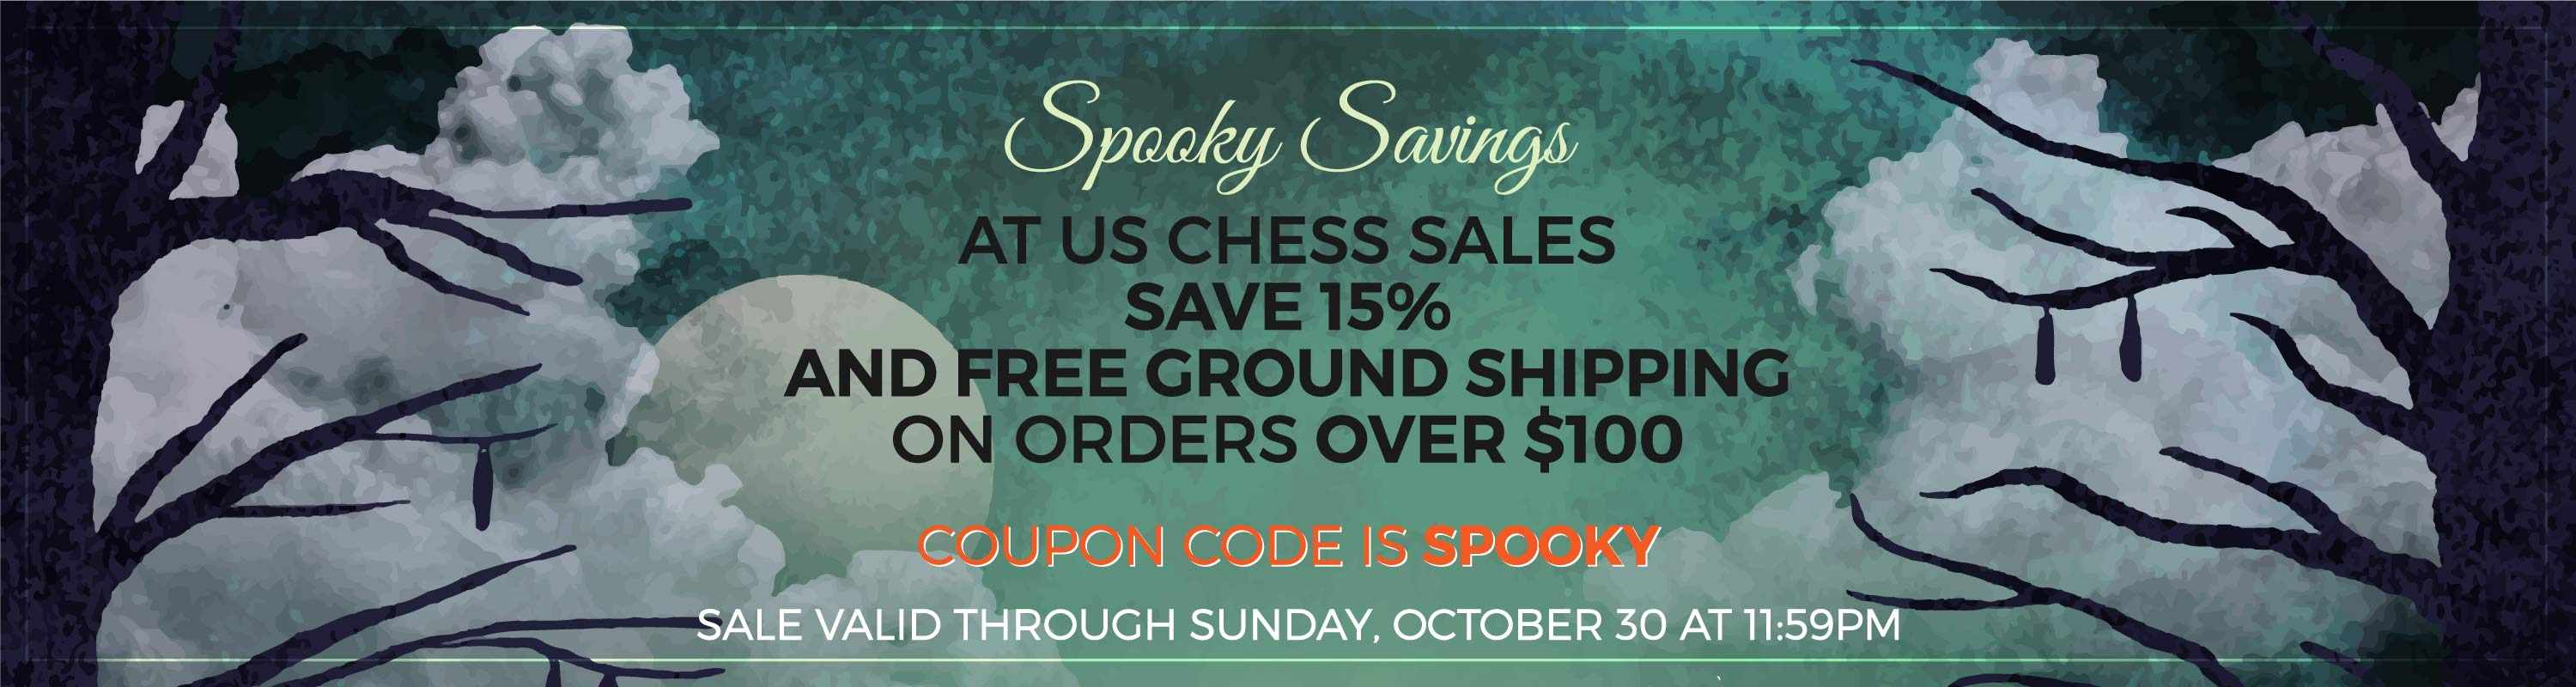 Spooky Savings at US Chess Sales! Save 15% and free ground shipping on orders over $100! Coupon code: SPOOKY